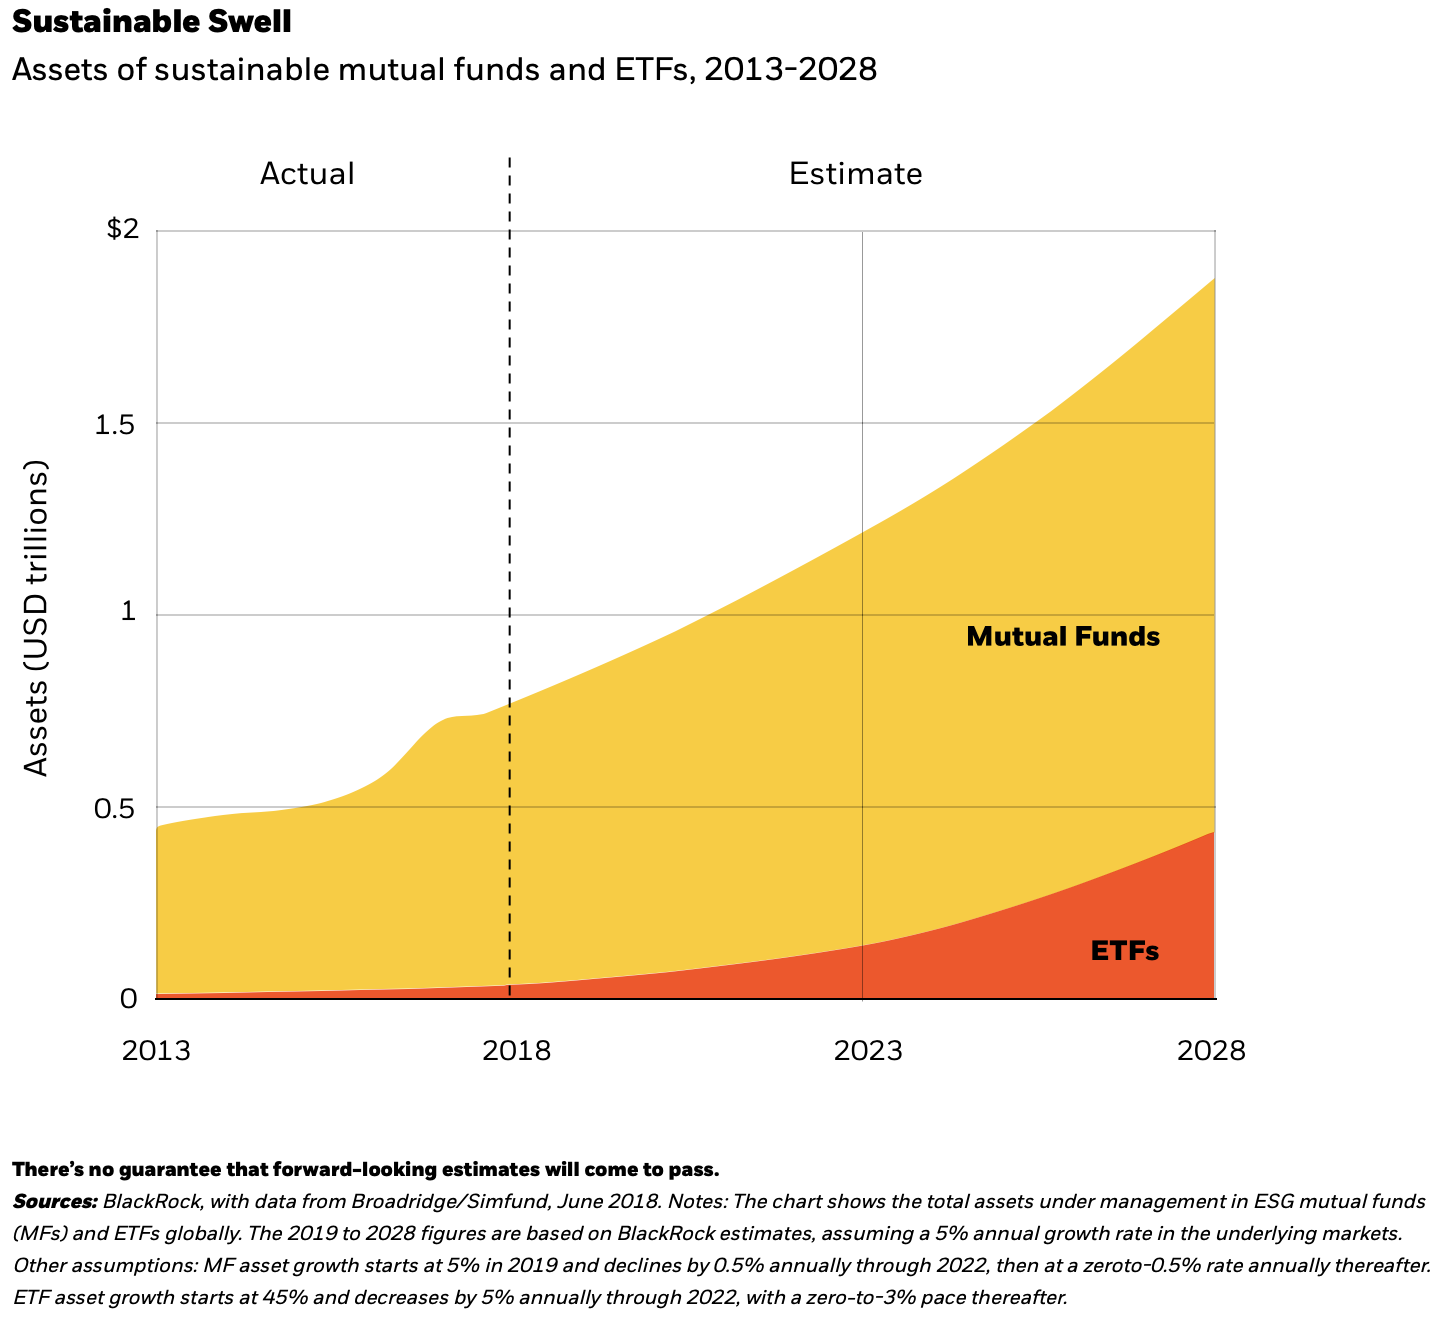 Assets of sustainable mutual funds and ETFs, 2013-2028